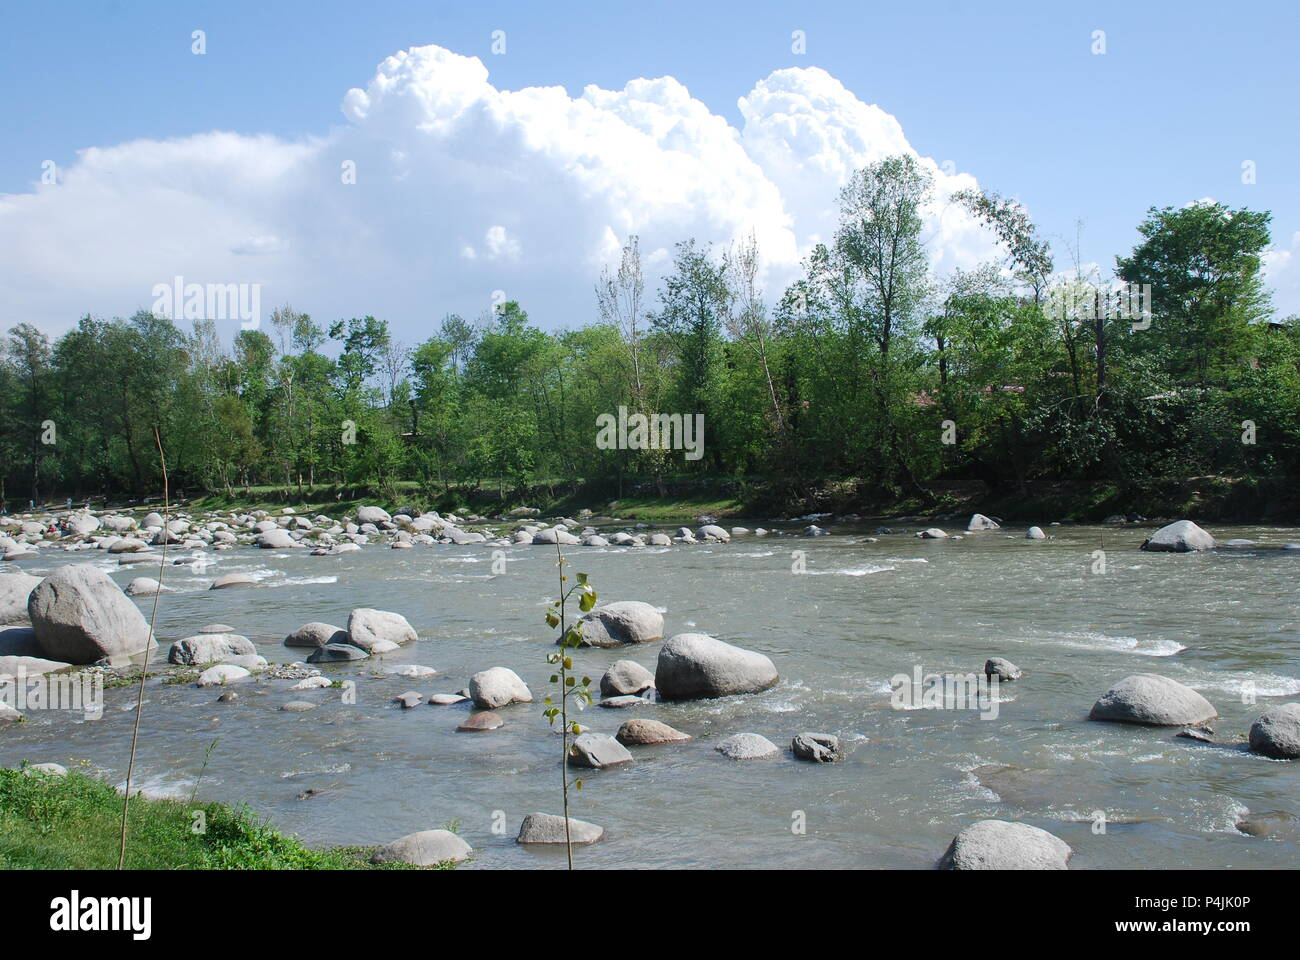 Majestic View from the river bank - Stock Image